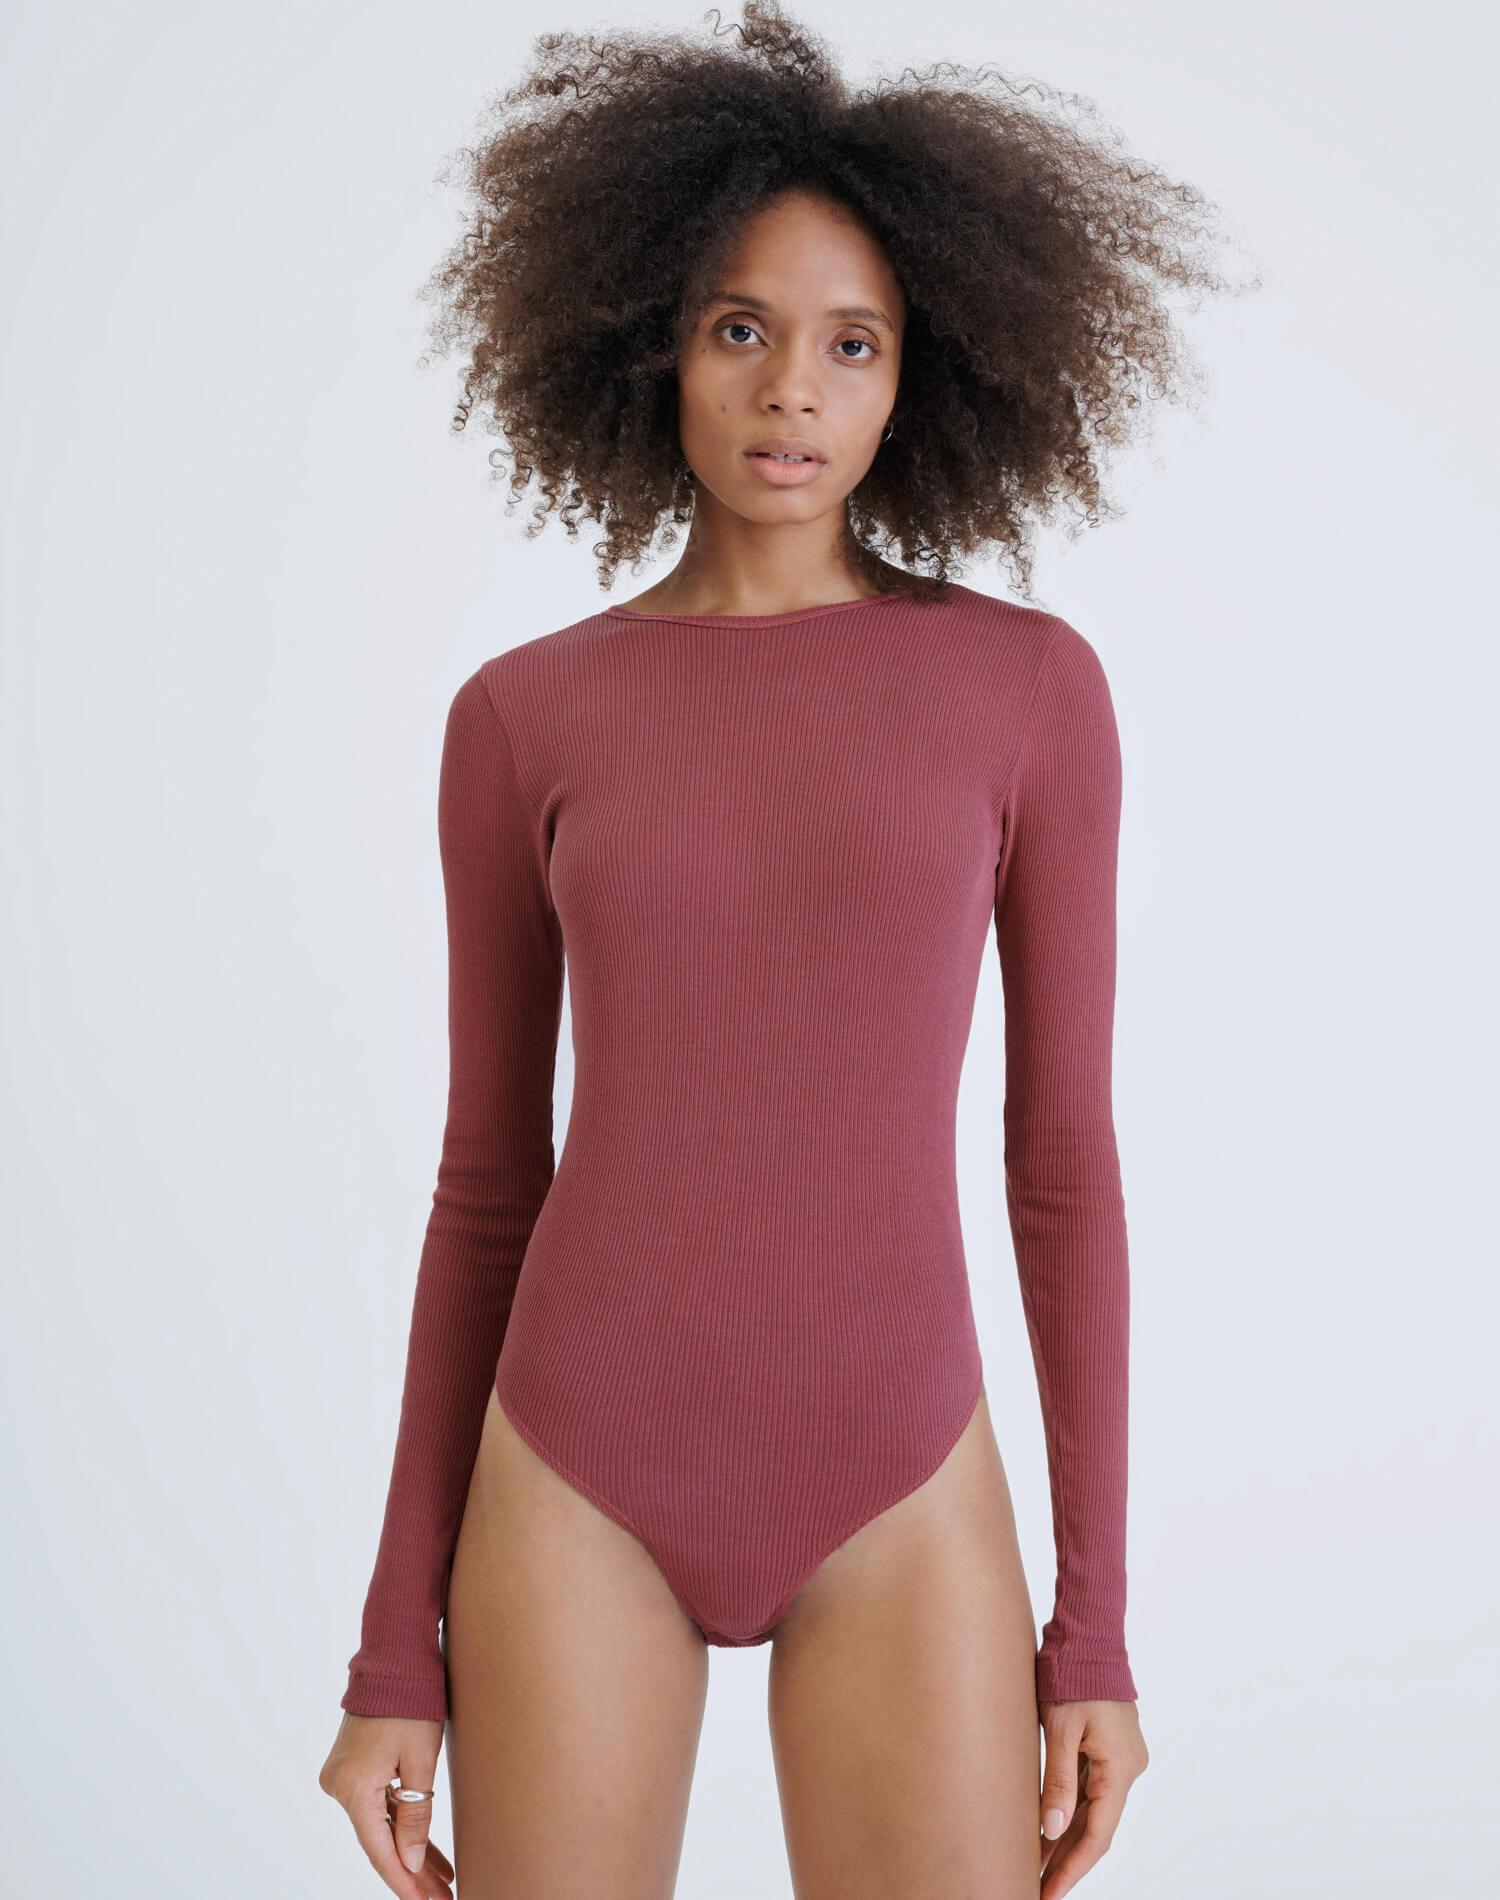 60s Ribbed Long Sleeve Bodysuit - Natural Berry 1